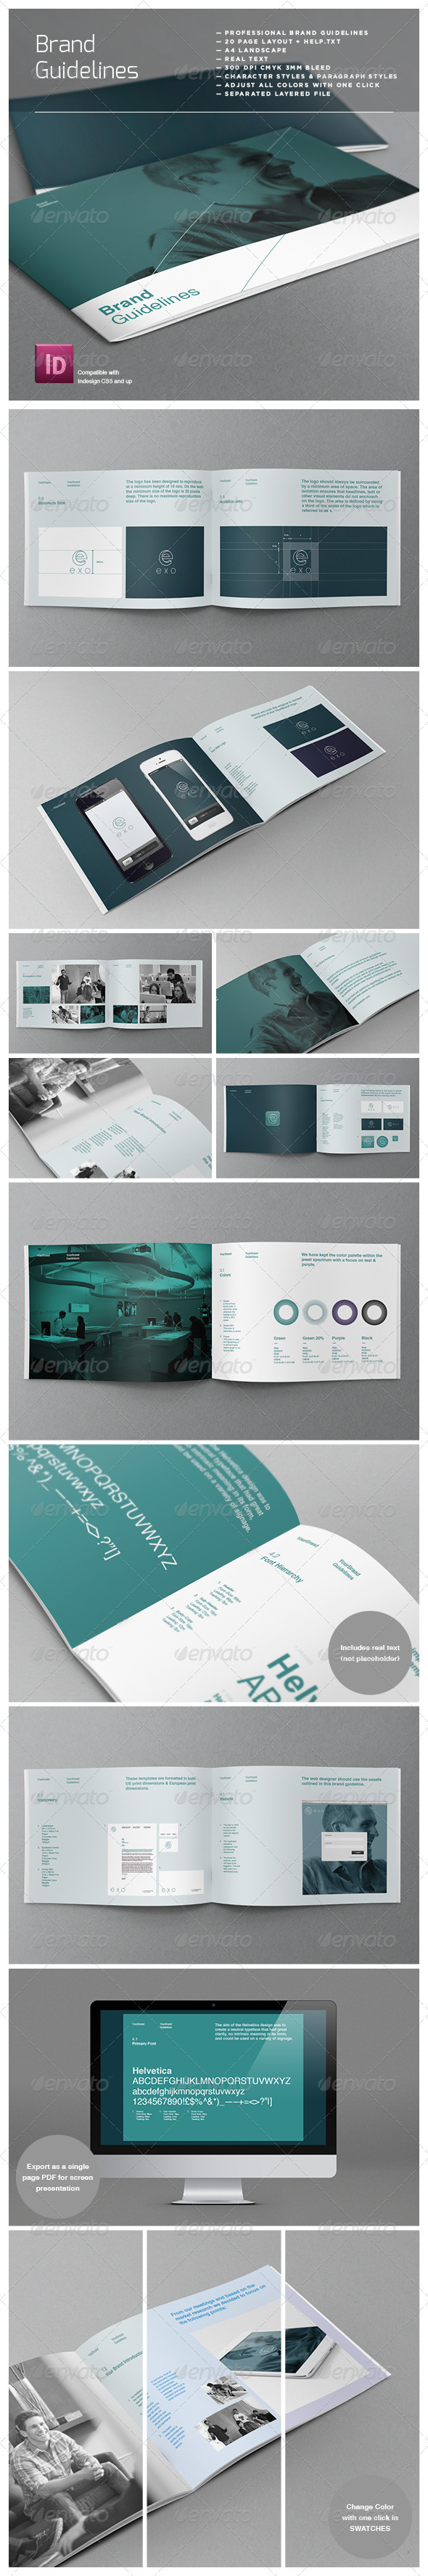 GraphicRiver Brand Logo Guidelines Template 3897215